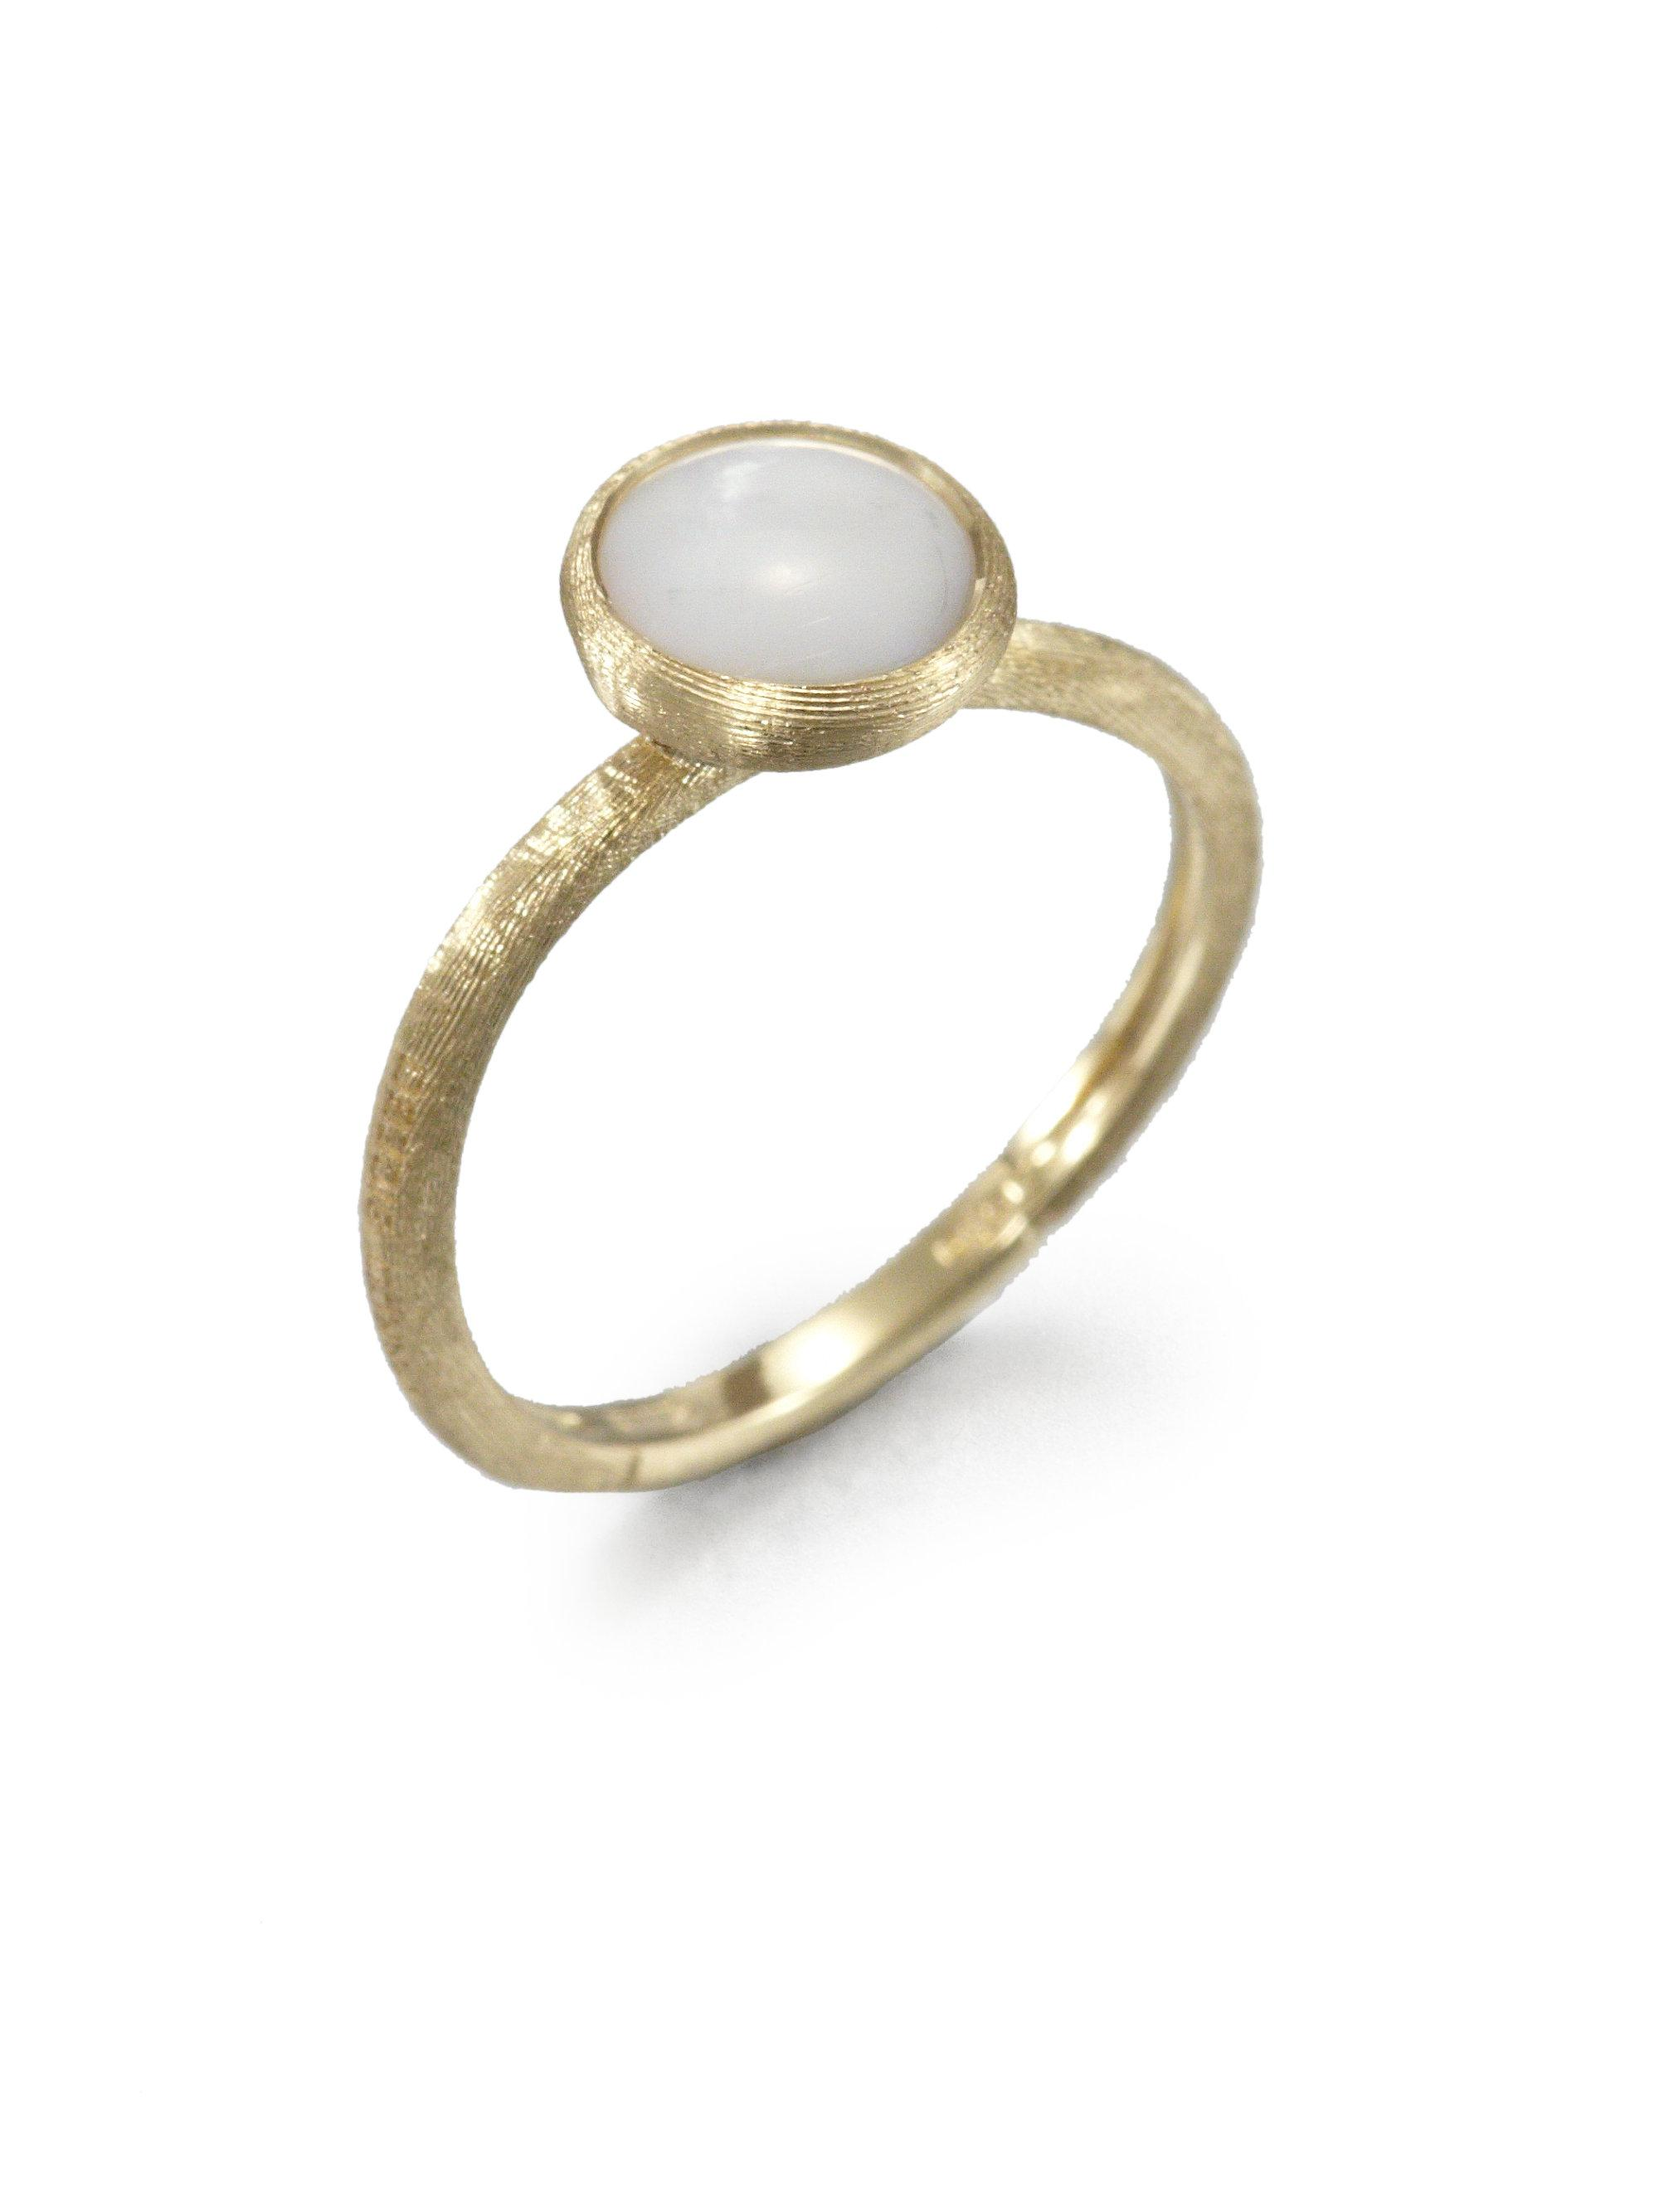 Marco Bicego Jaipur Mother-of-Pearl Stackable Ring 5jaW0Q